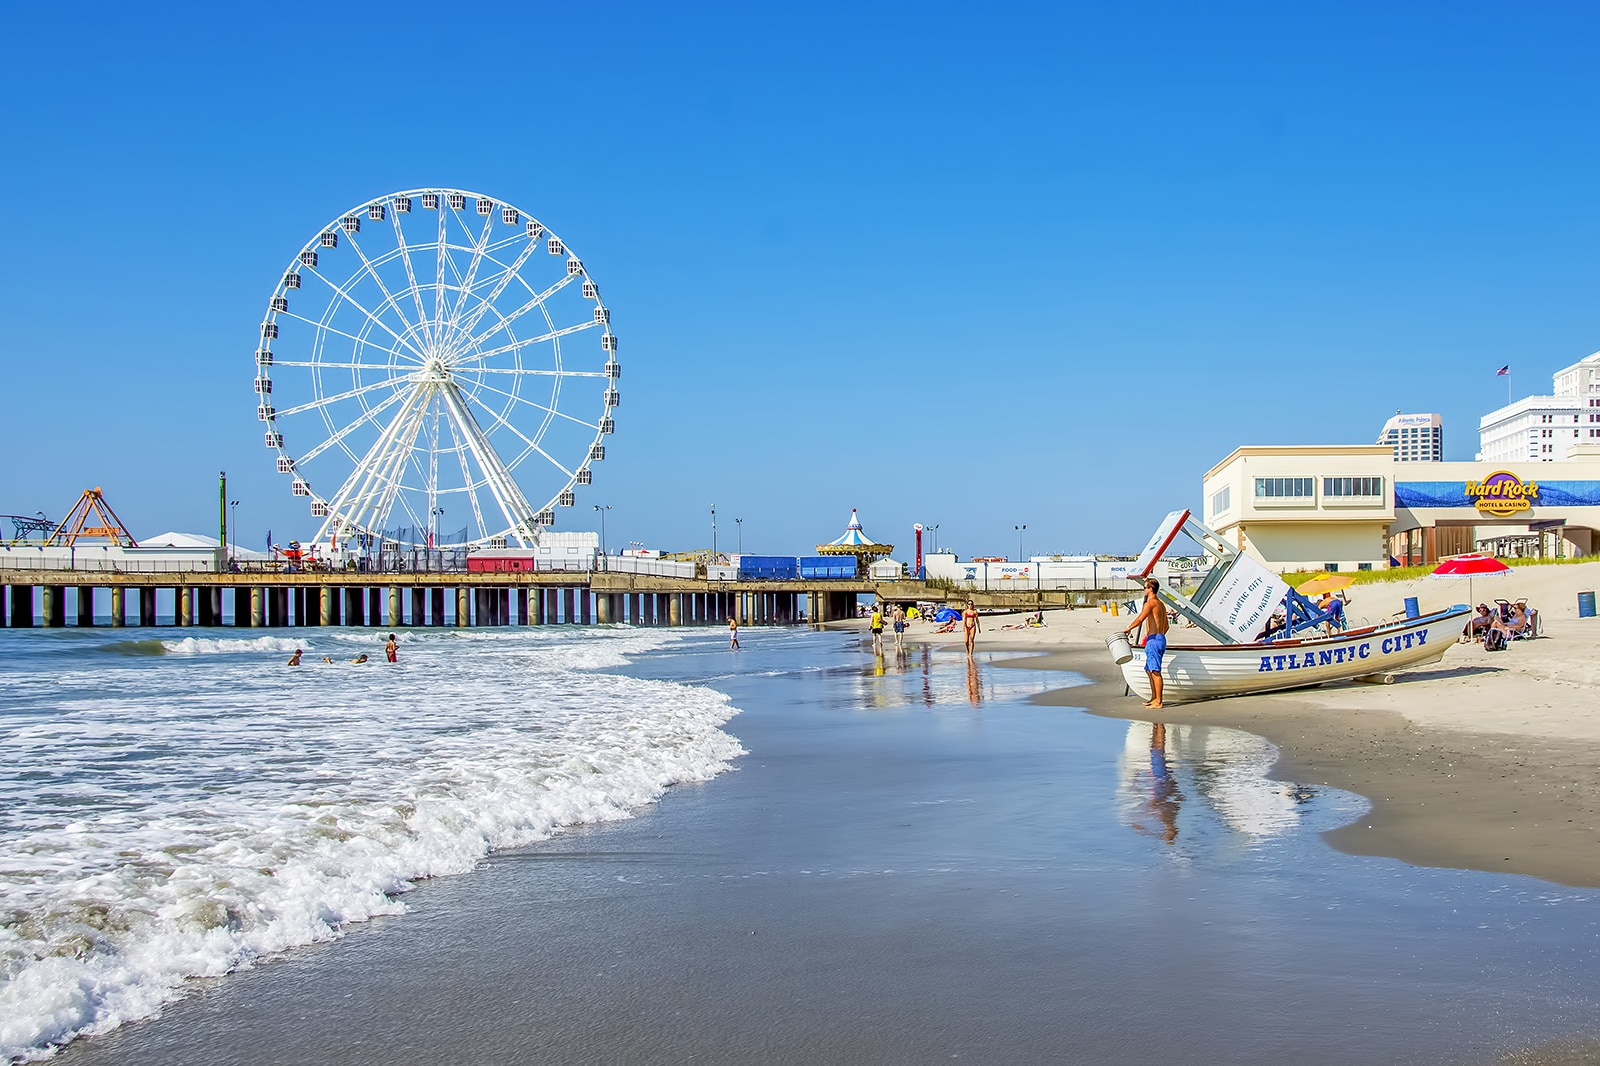 20 Things to Do in Atlantic City on a Small Budget   Holidays in ...